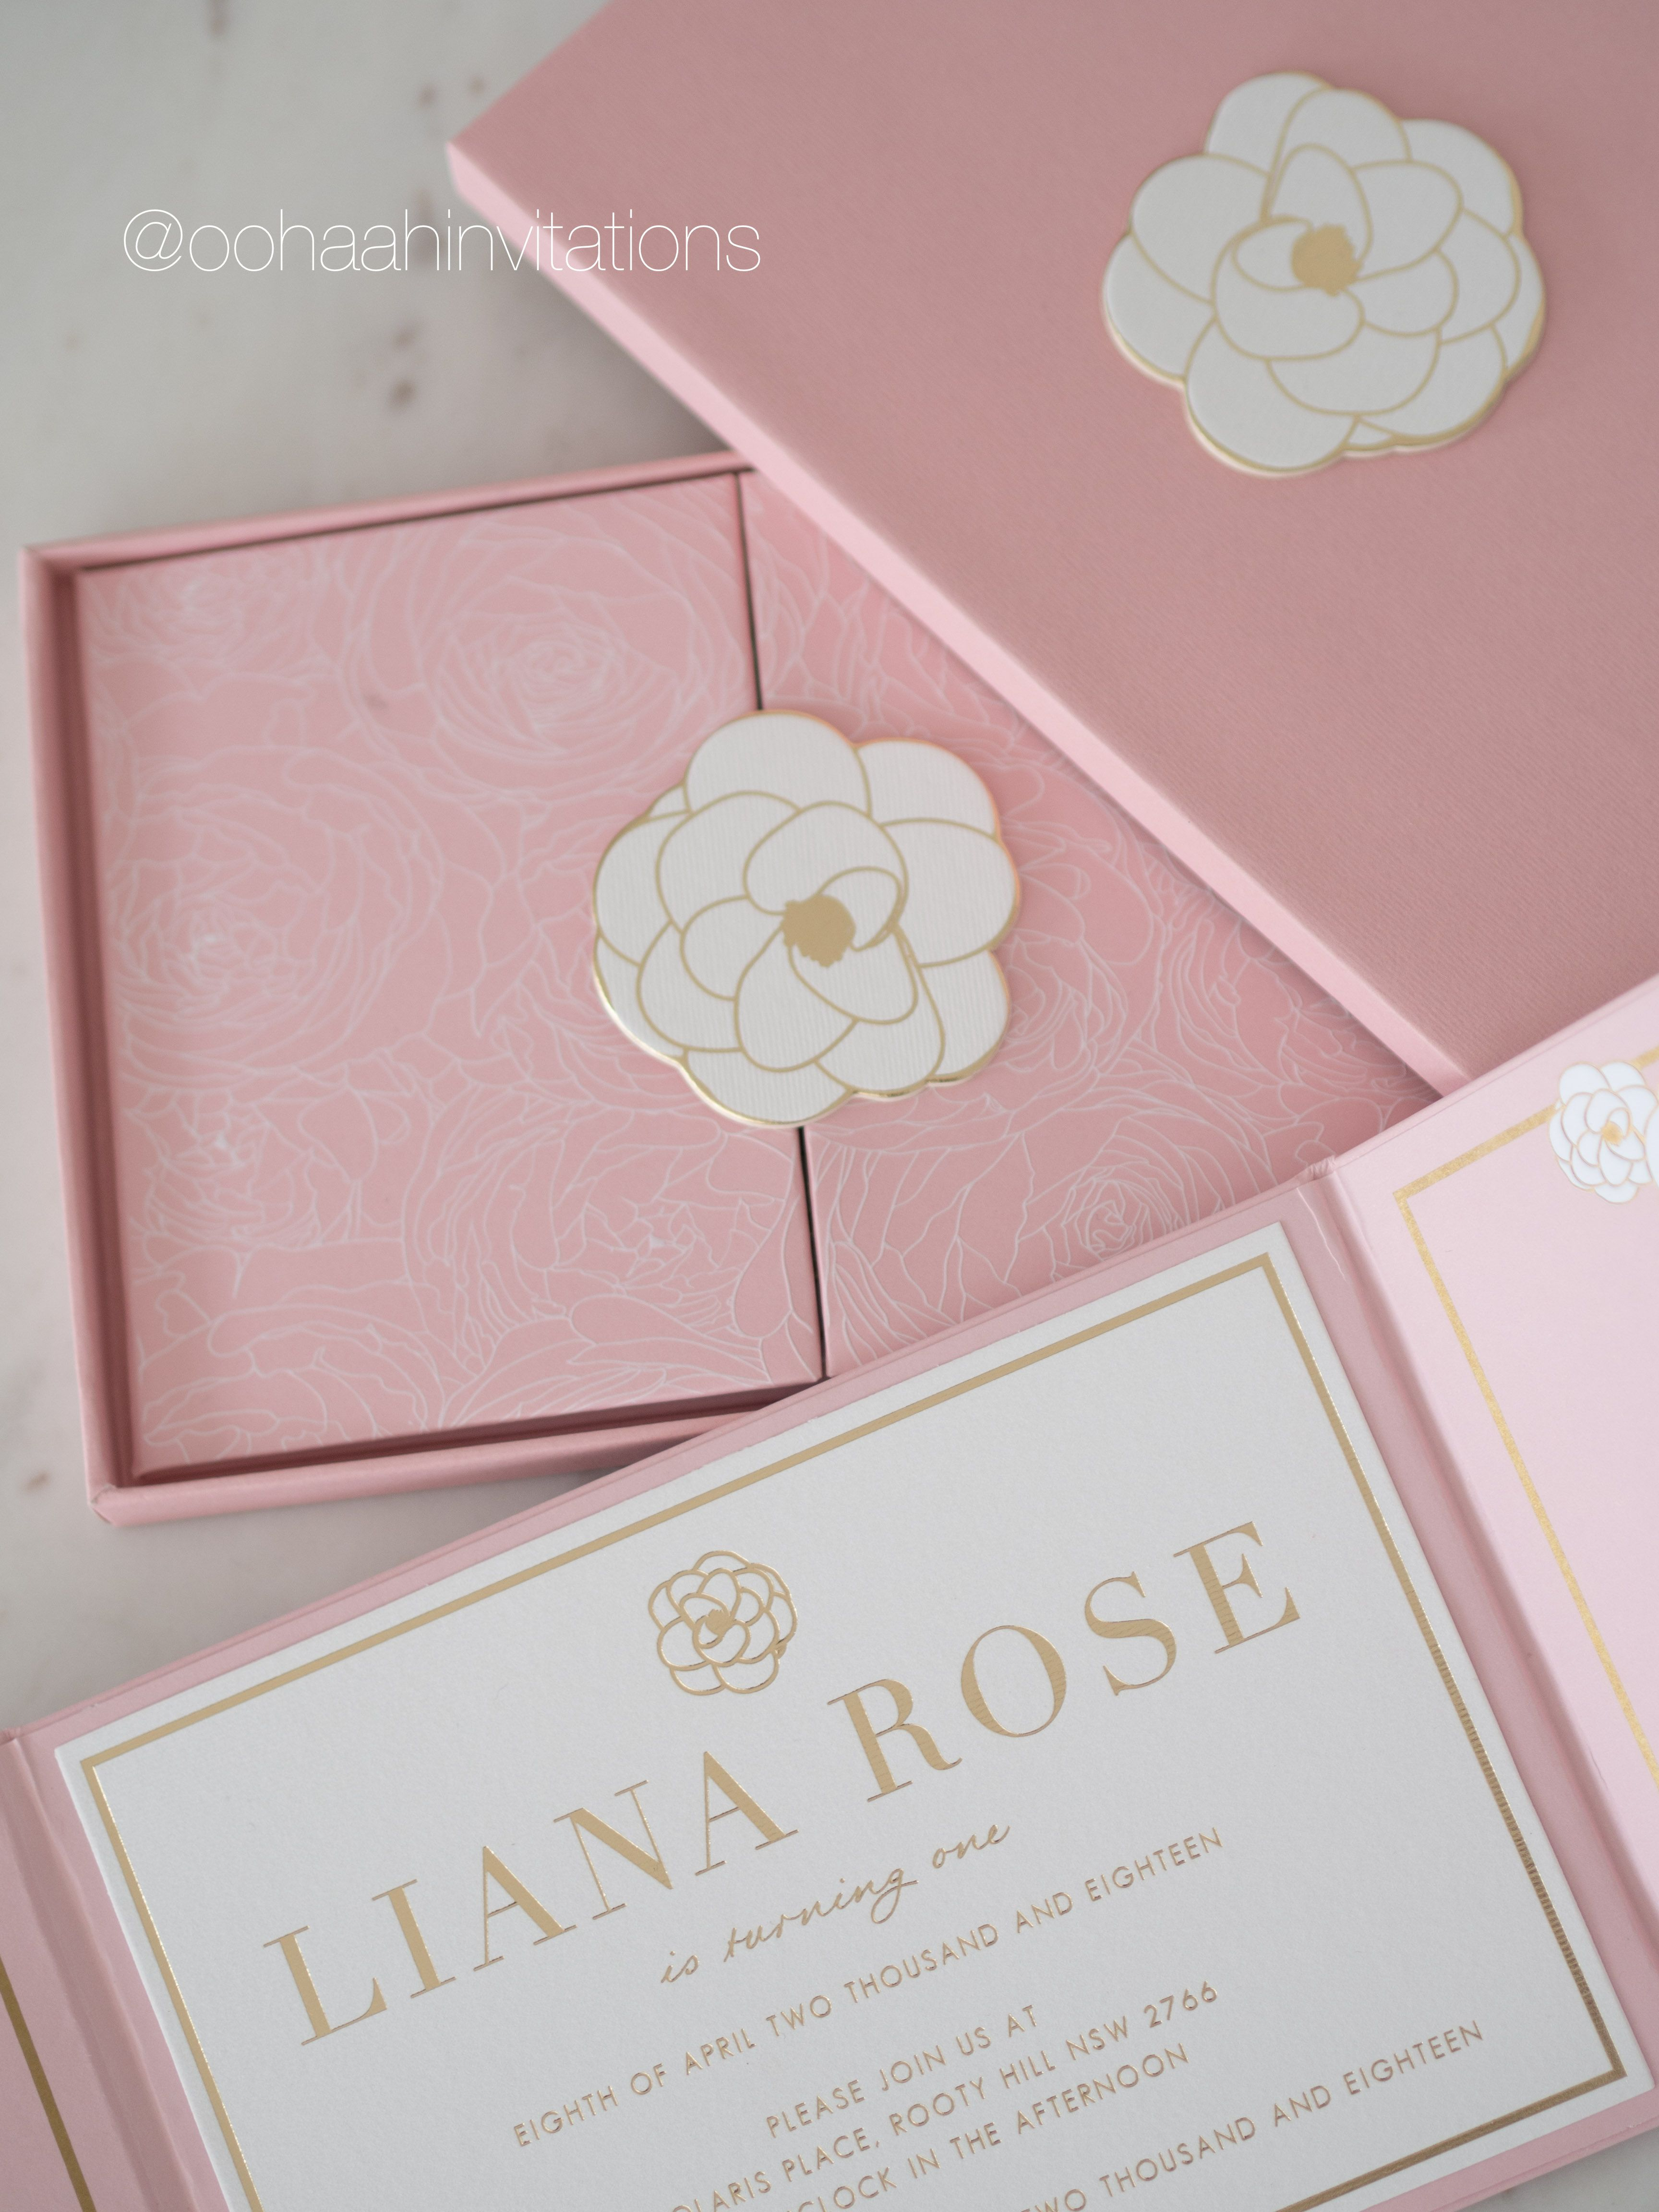 Inside the box Liana Rose turns one Our signature hardcover invitation comes with a